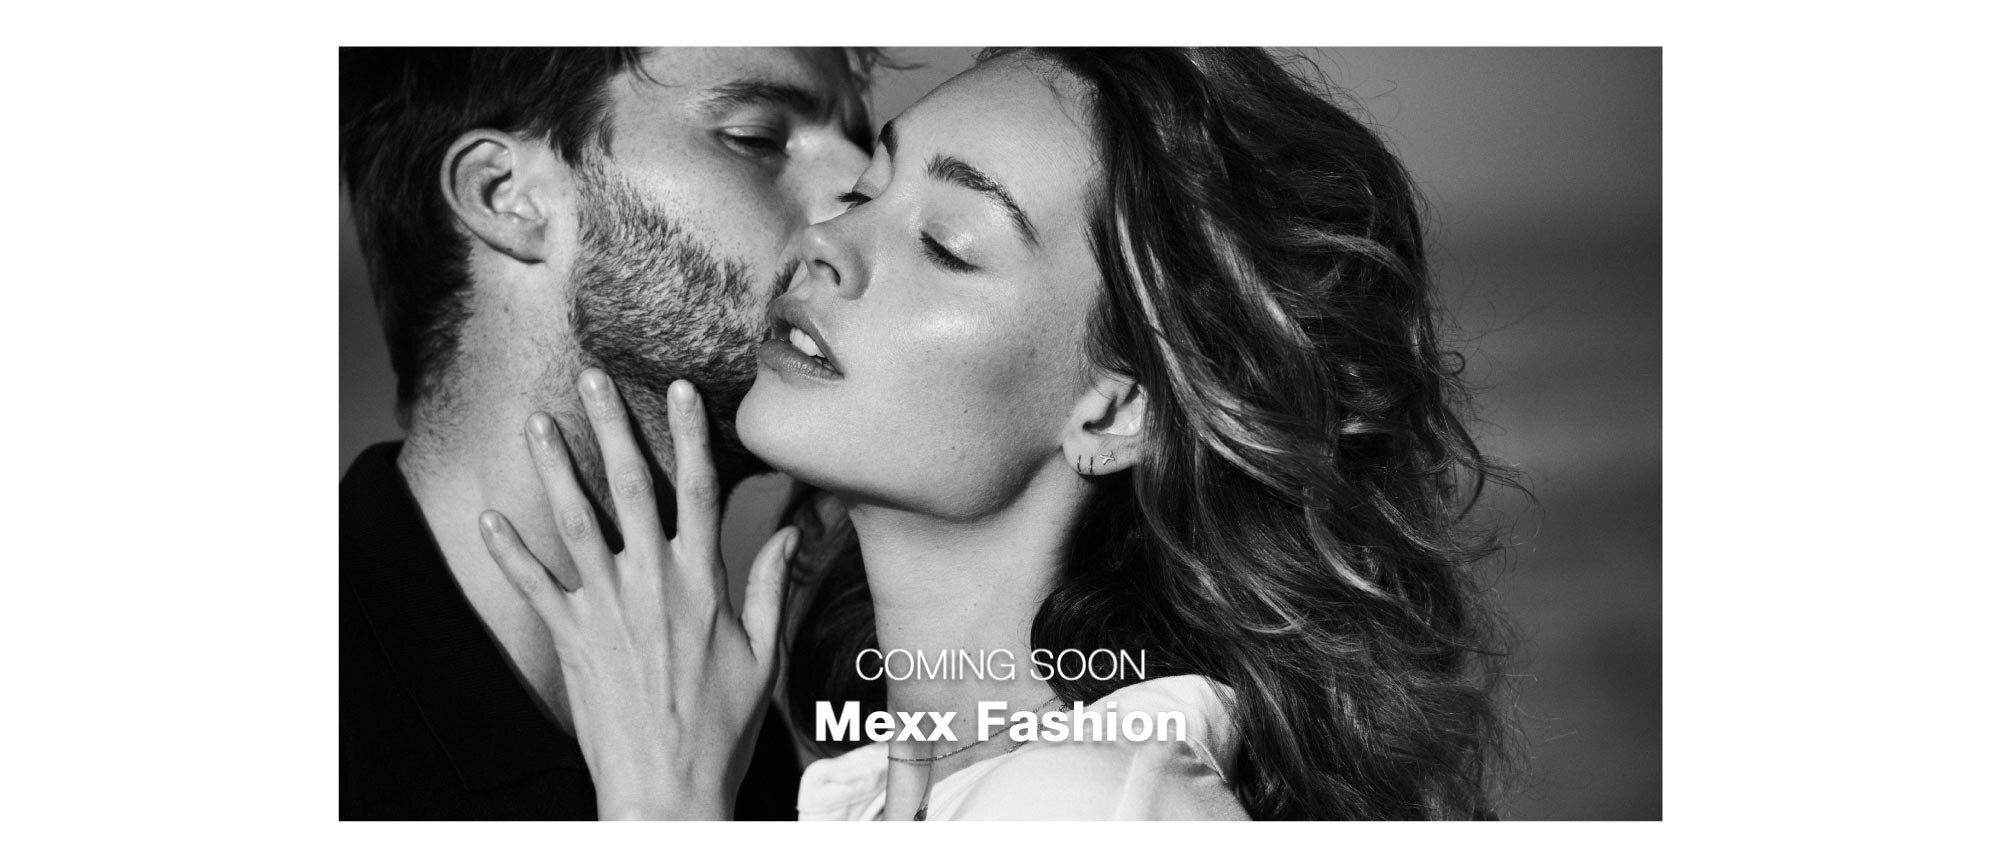 Mexx fashion